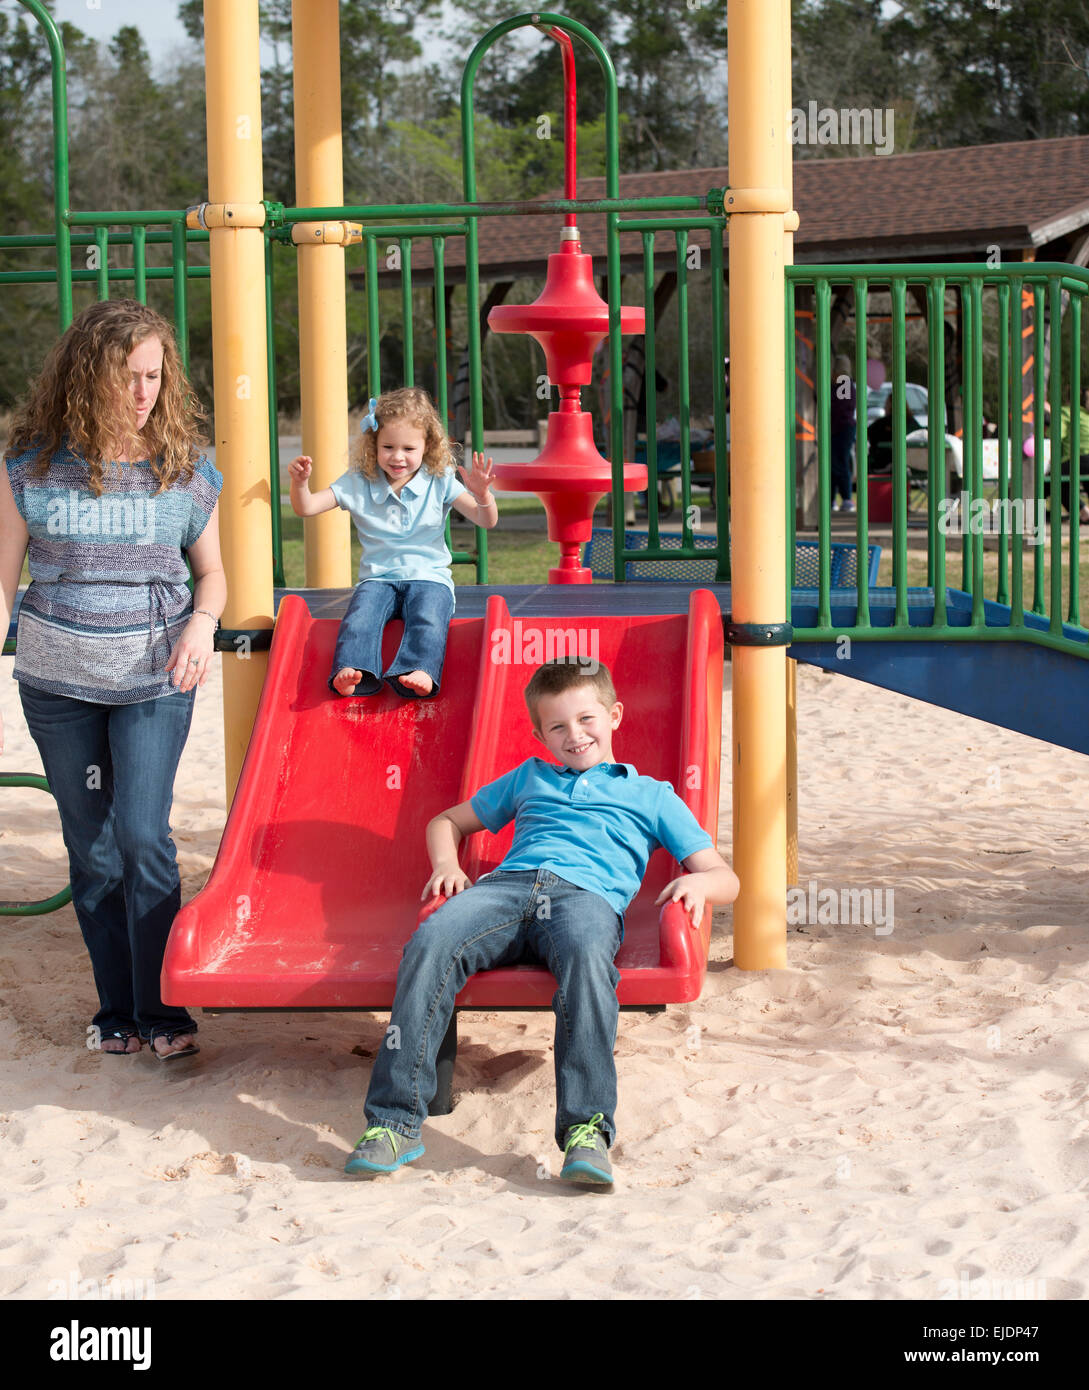 Young Boy And Girl Go Down Slide On Park Playground While Mom Looks